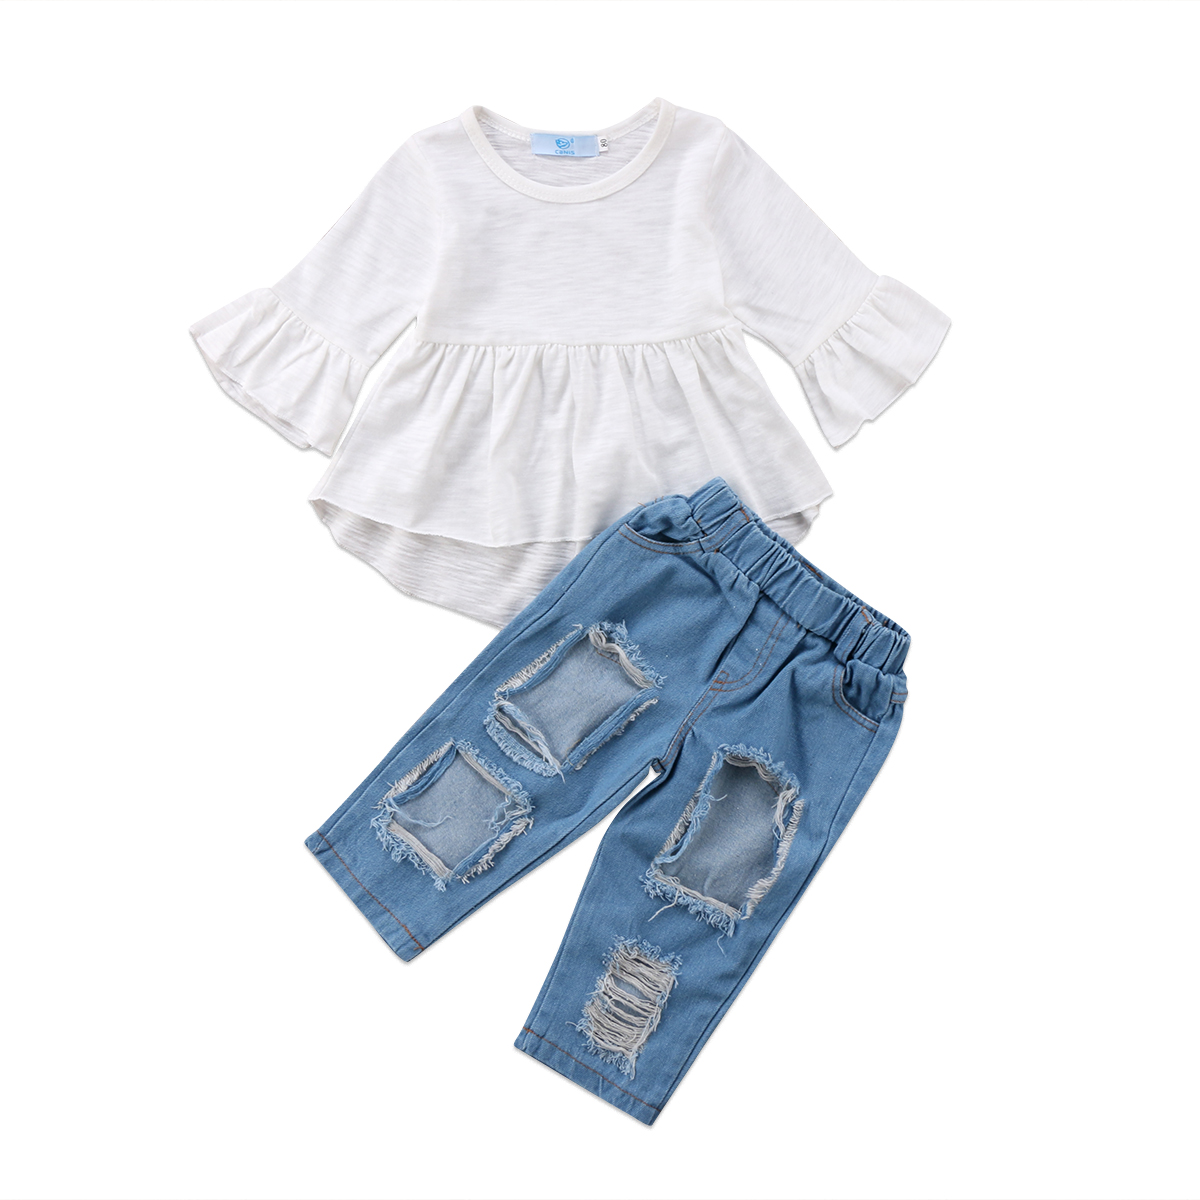 2f9a6103b6682 Girl Set Fashion Baby Kids Tunic Cotton Tops Dress Ripped Denim Pants Jeans  Outfits Long Sleeves Clothes-in Clothing Sets from Mother & Kids on ...